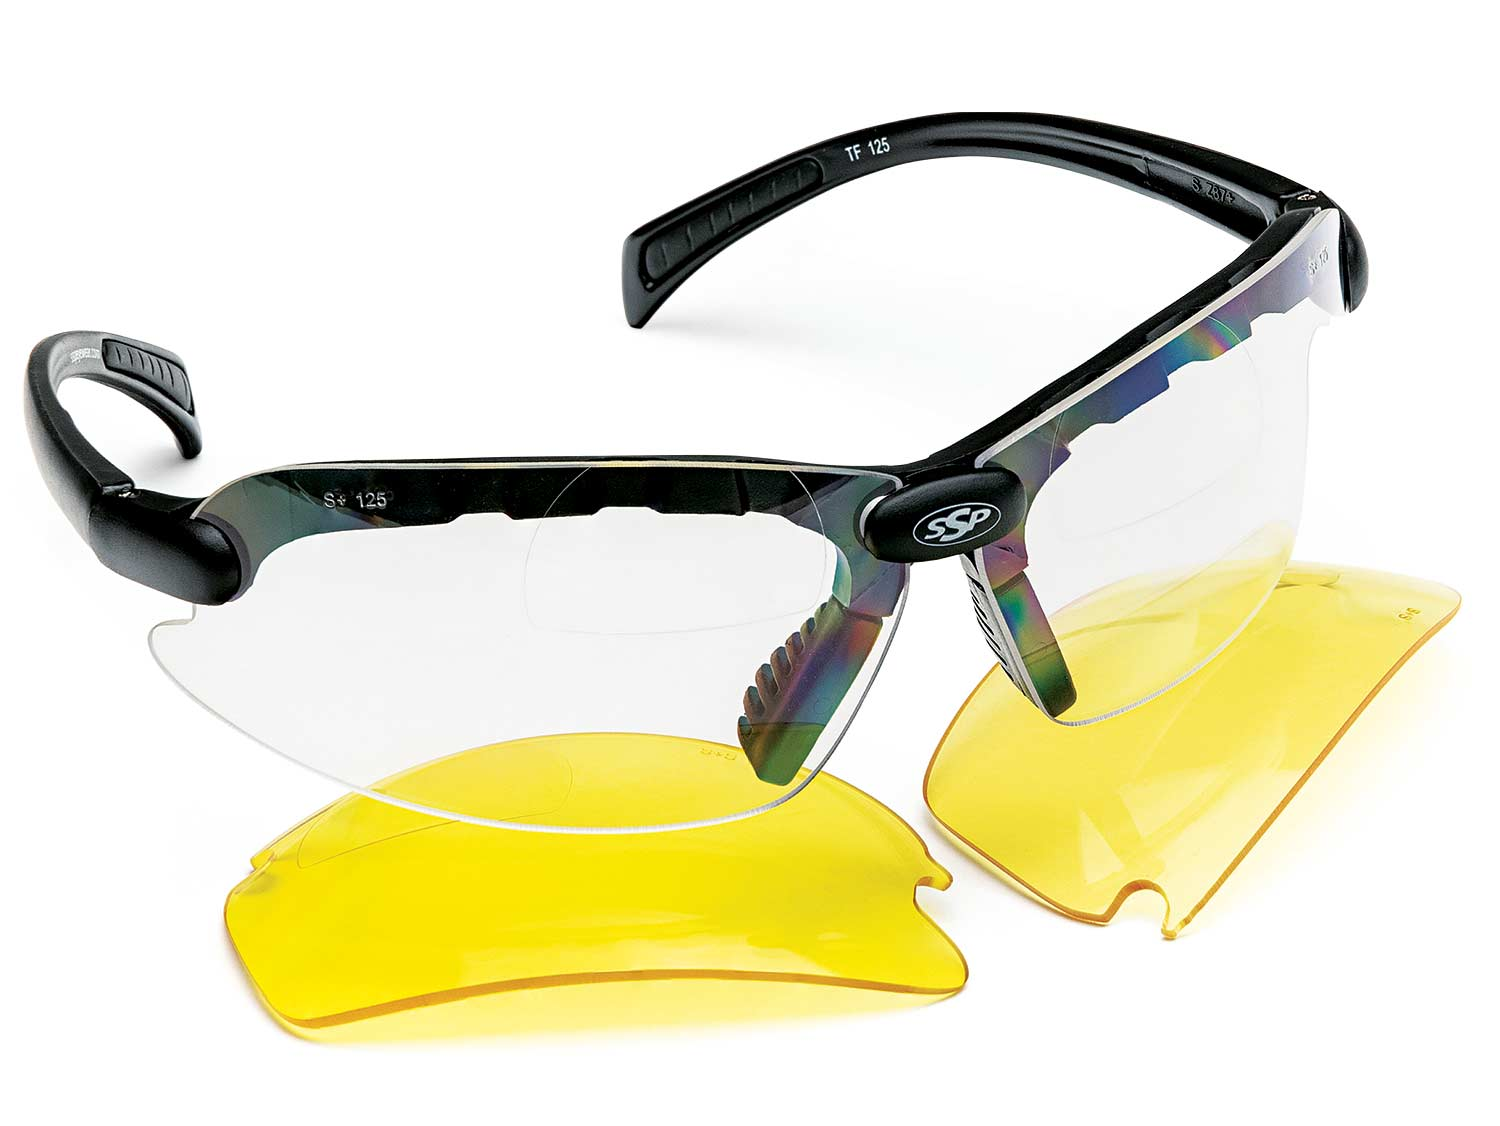 SSP Eyewear Top Focal Premier Kit